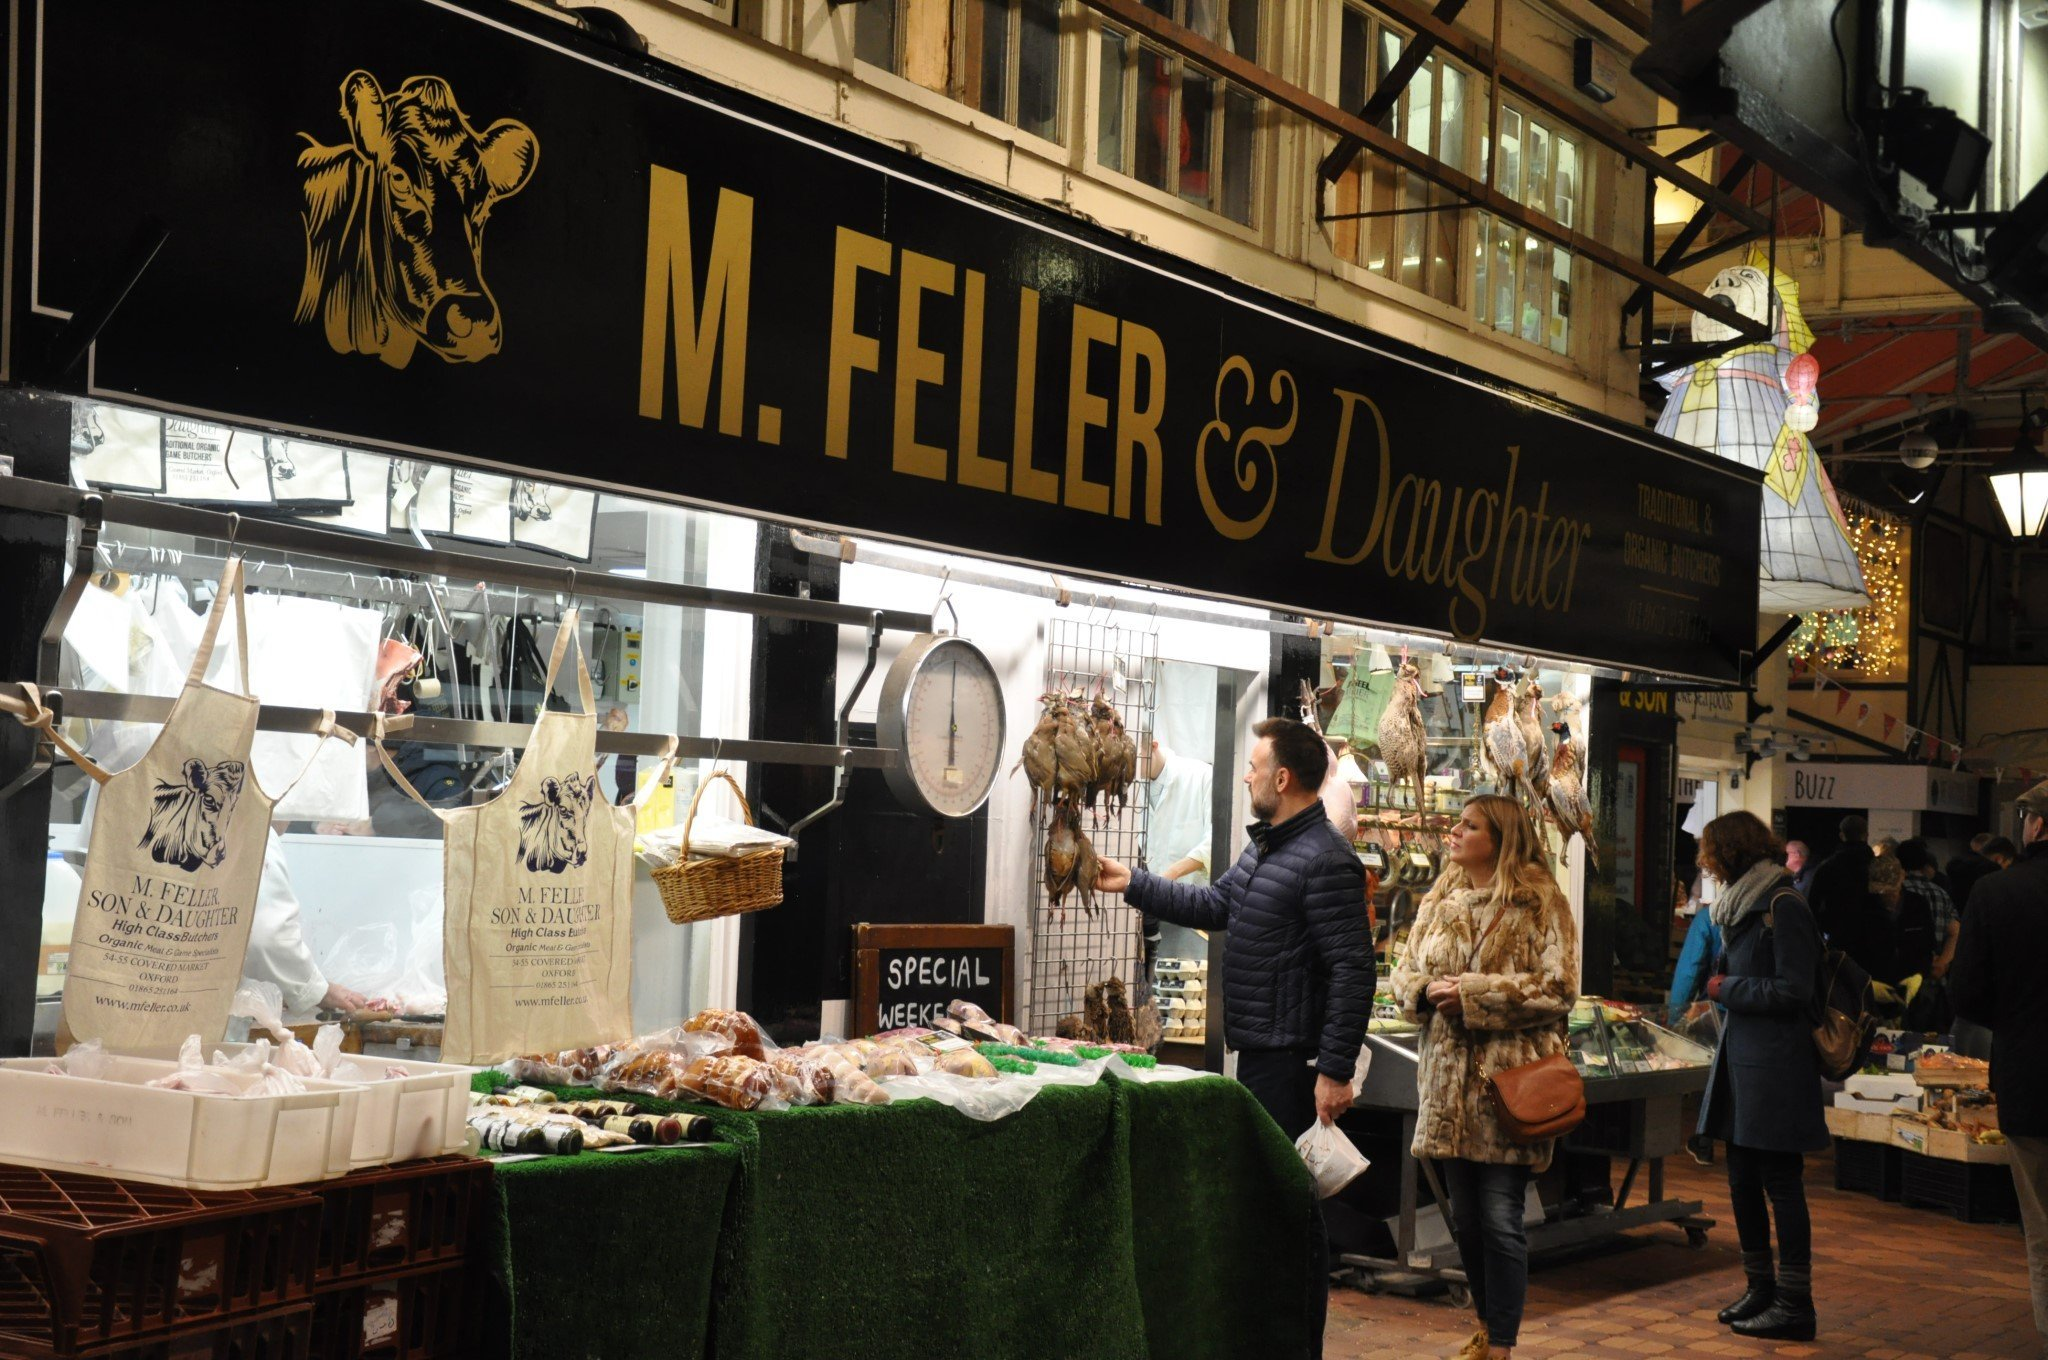 A festive shopping day out at Oxford's Covered Market